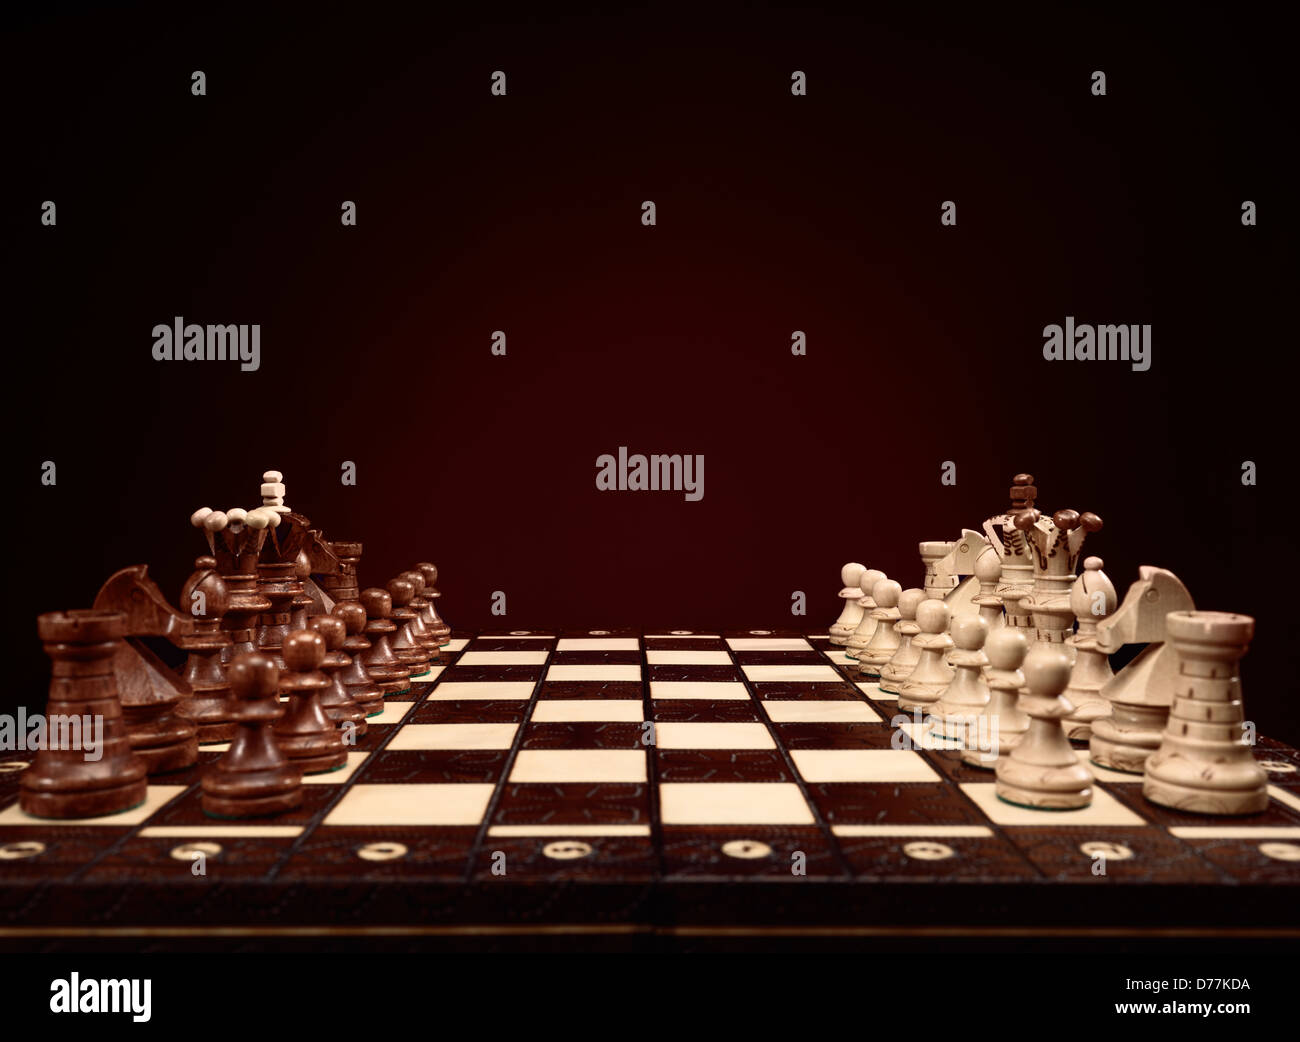 Chessboard with chess pieces, board game on brown background - Stock Image